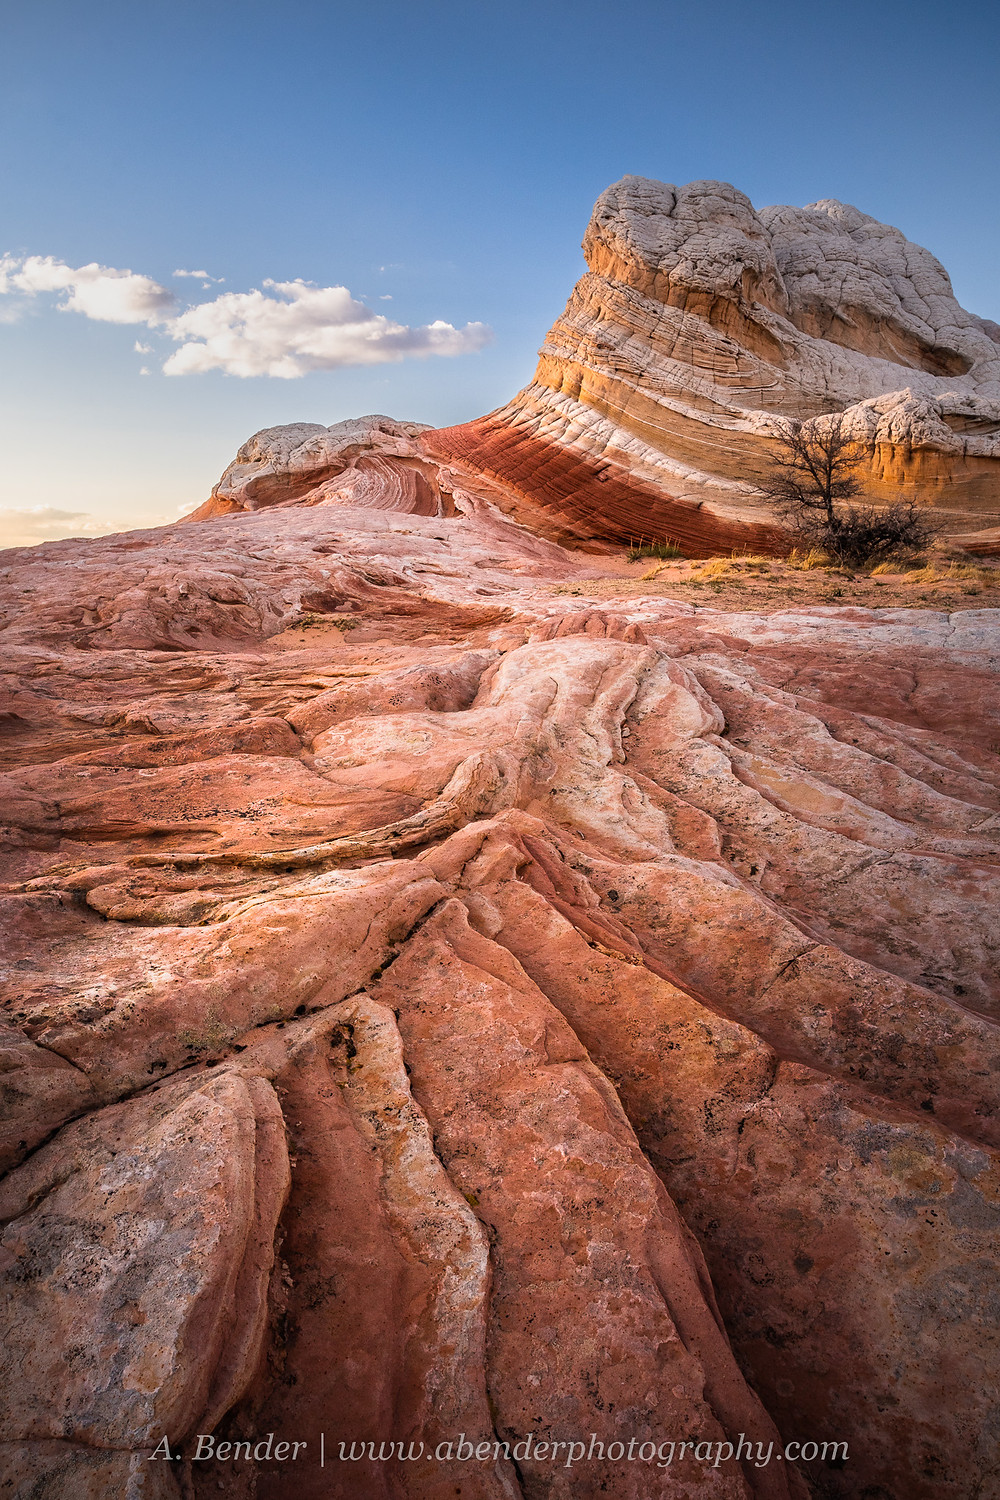 Unique orange and white sandstone formations at sunset in White Pocket, Northern Arizona   A Bender Photography LLC